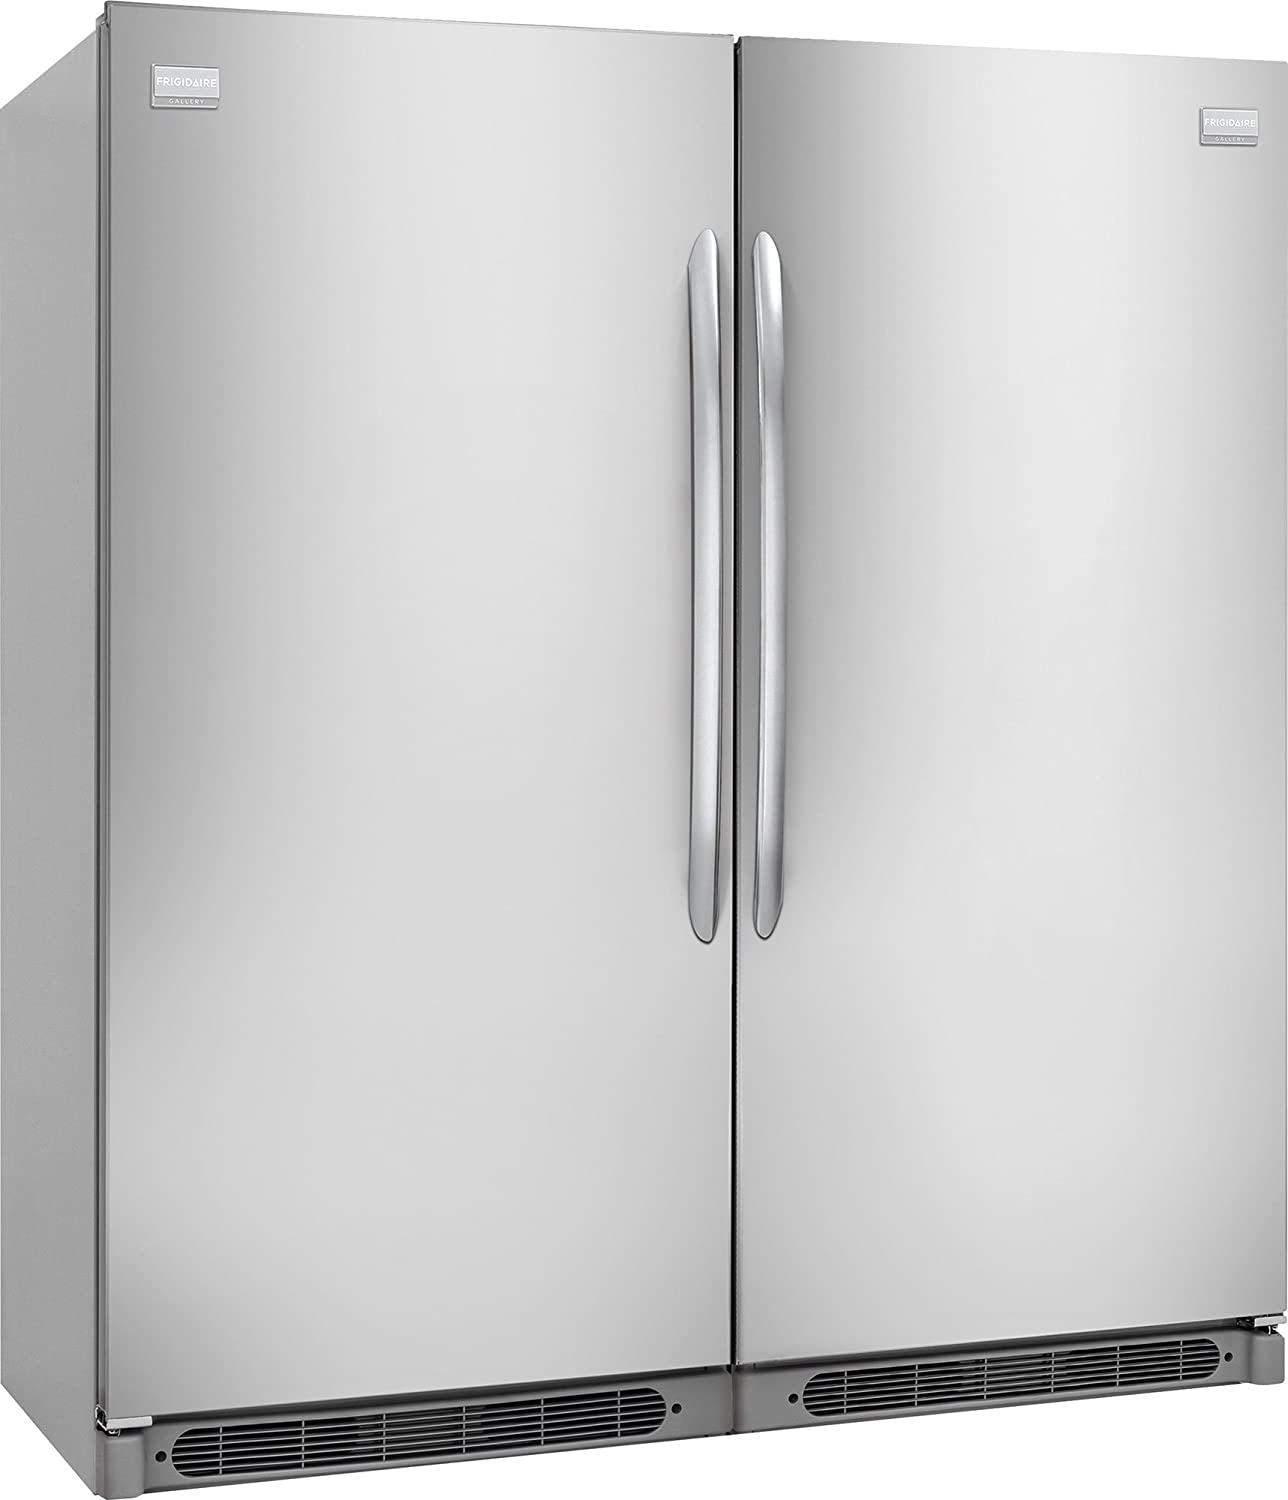 Frigidaire Gallery Series Built-In All Refrigerator, All Freezer Combo Unit with Easy Care Stainless Steel (FGRU19F6QF_FGFU19F6QF)